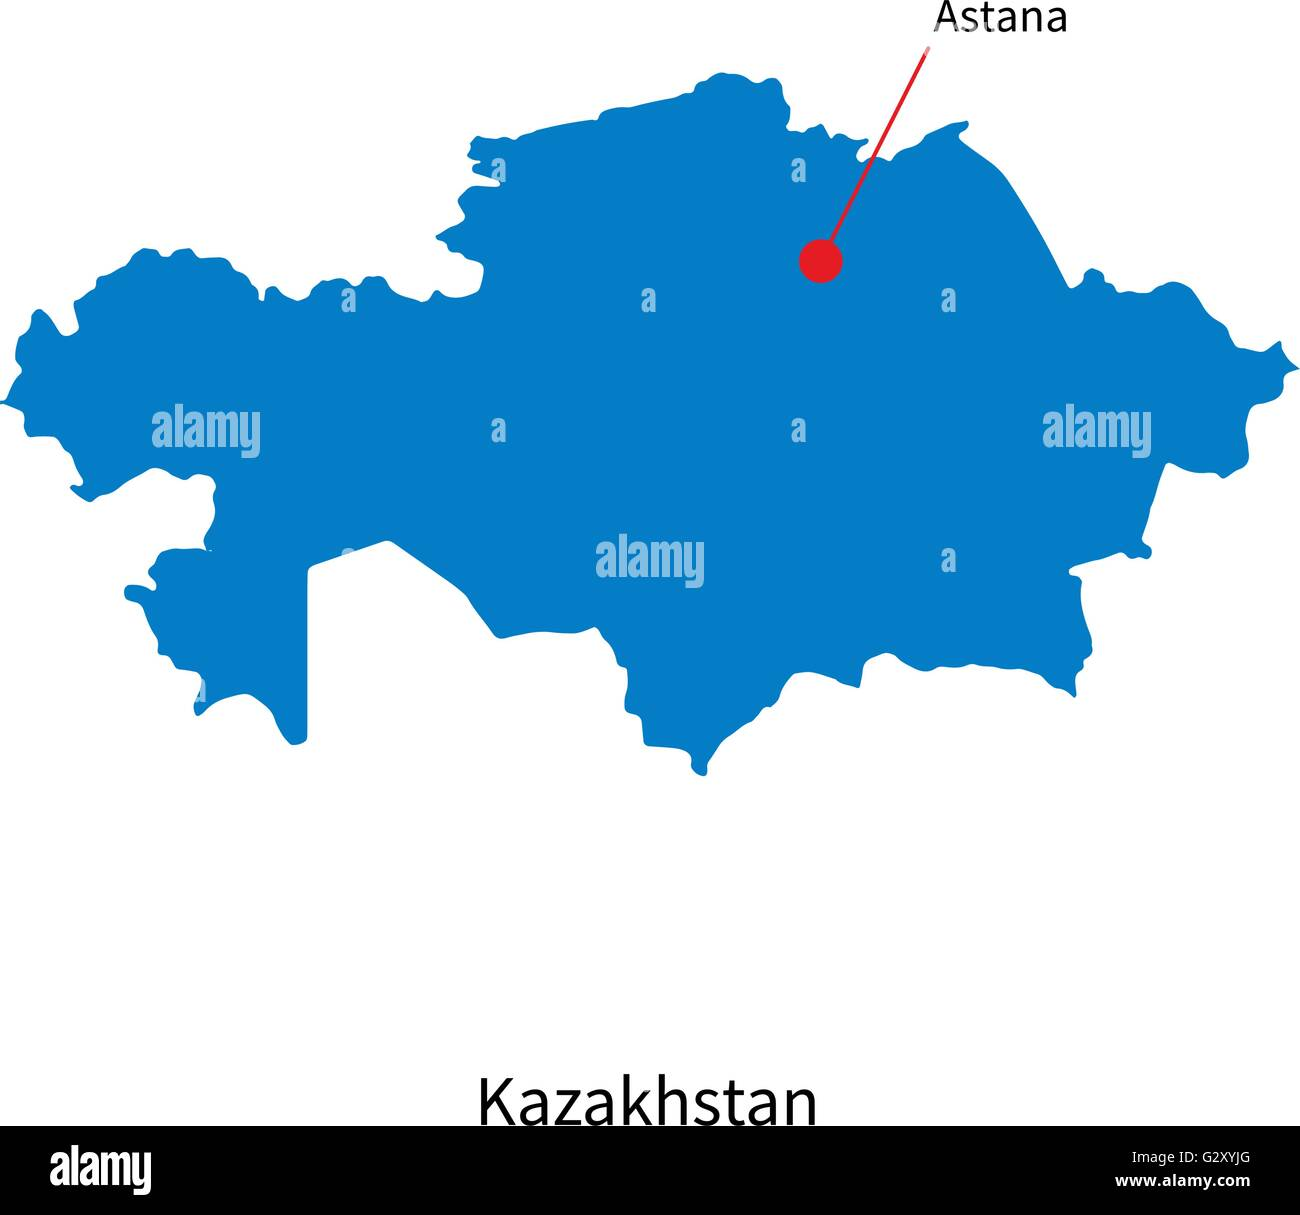 Detailed vector map of kazakhstan and capital city astana stock detailed vector map of kazakhstan and capital city astana gumiabroncs Images